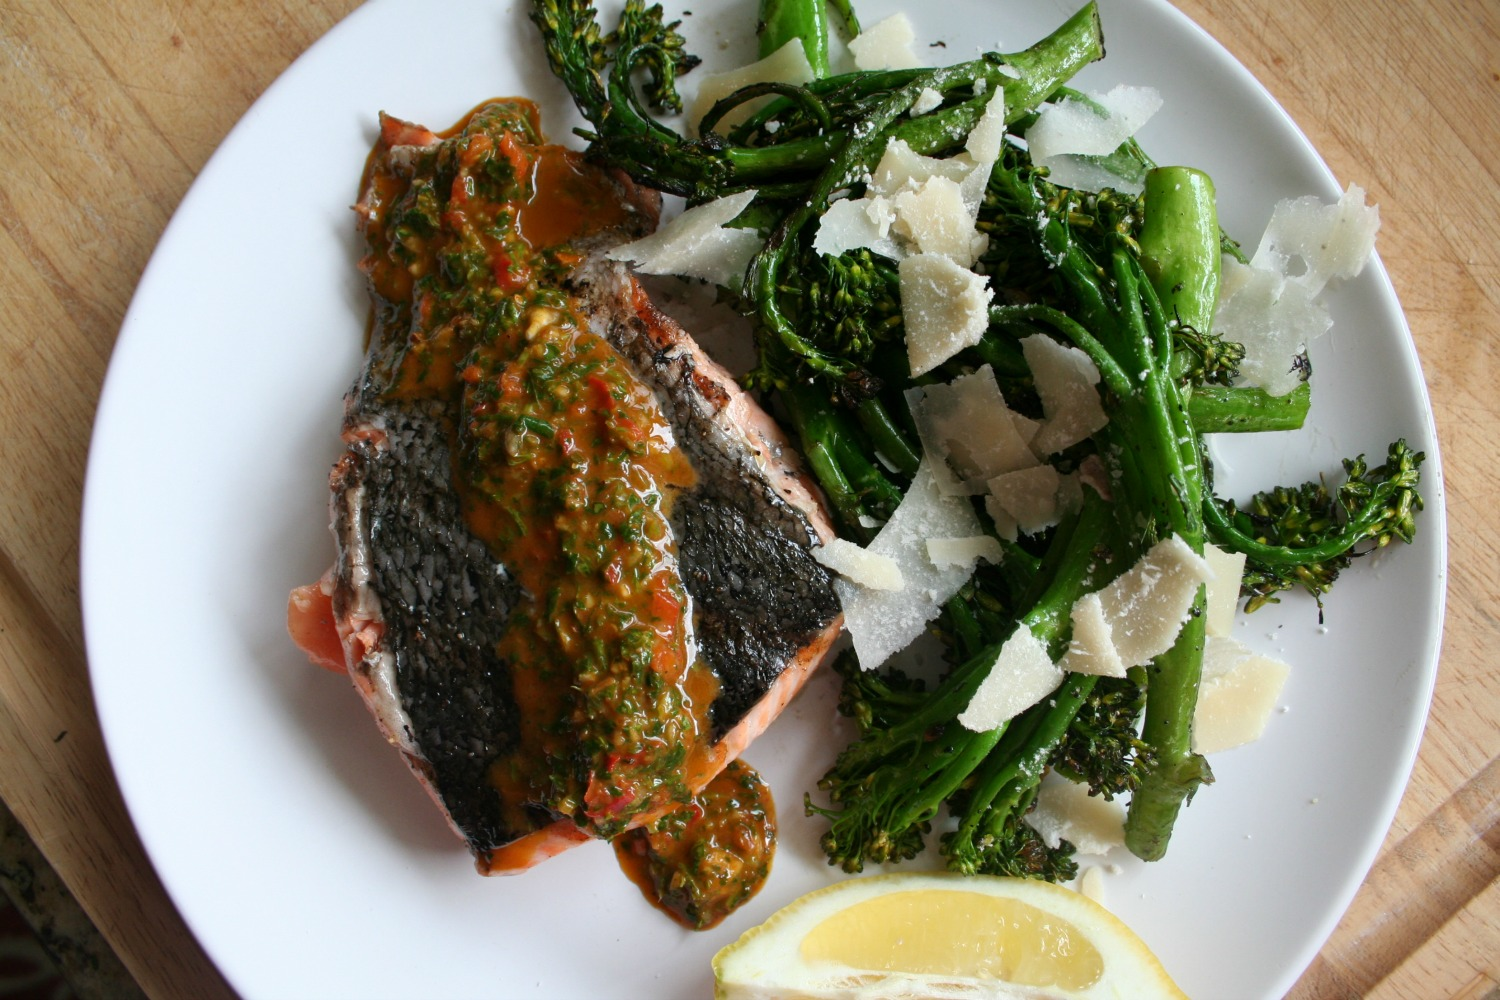 Grilled Salmon With Red Chimichurri Sauce Inspired By Olive Garden 39 S Lighter Fare Menu Spon